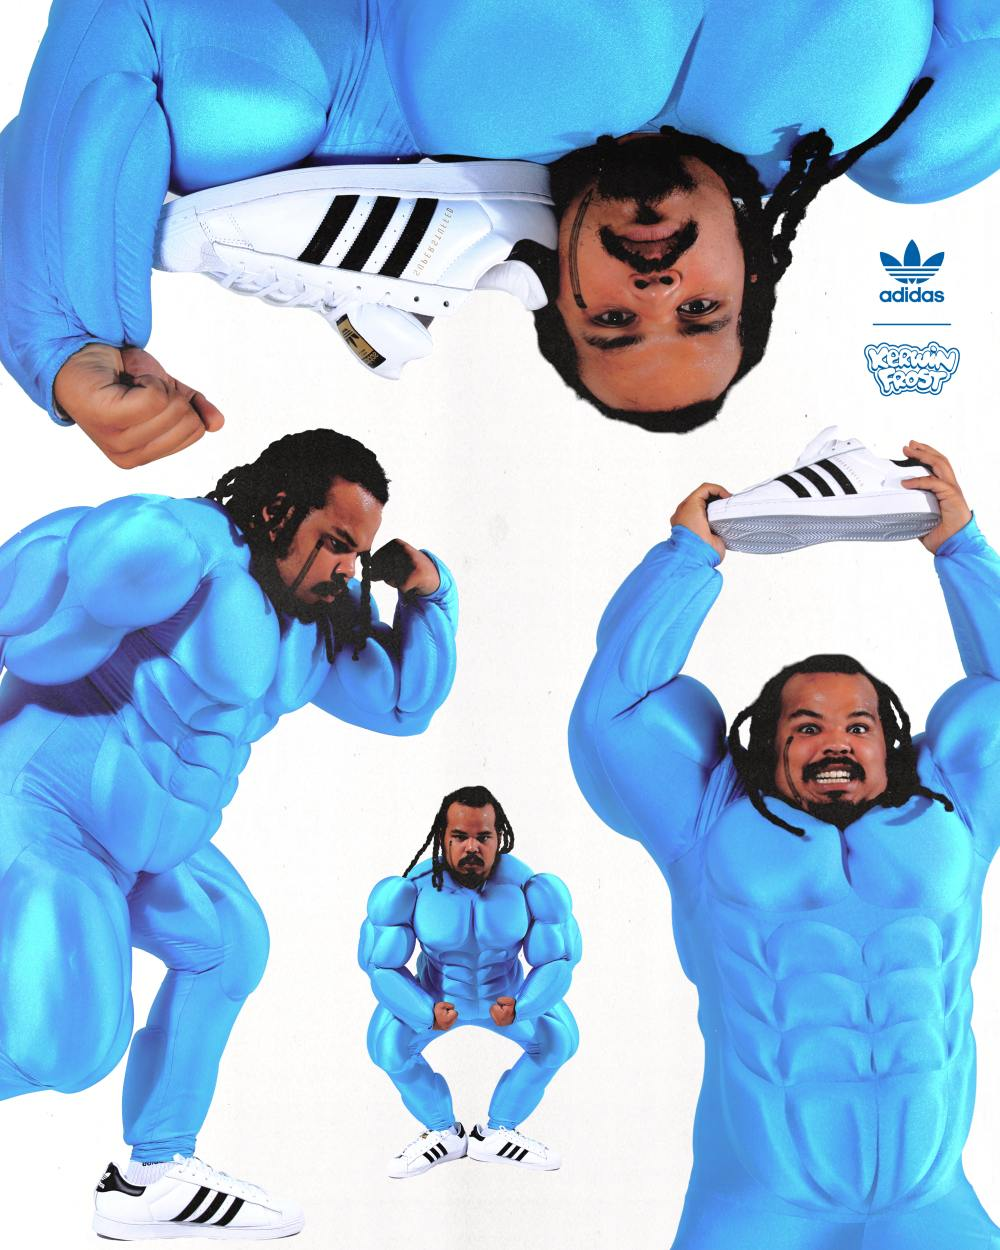 """kerwin frost splitting to play shoes - Kerwin Frost x Adidas 推出极有创意的 """"SUPERSTUFFED """"小丑鞋!"""